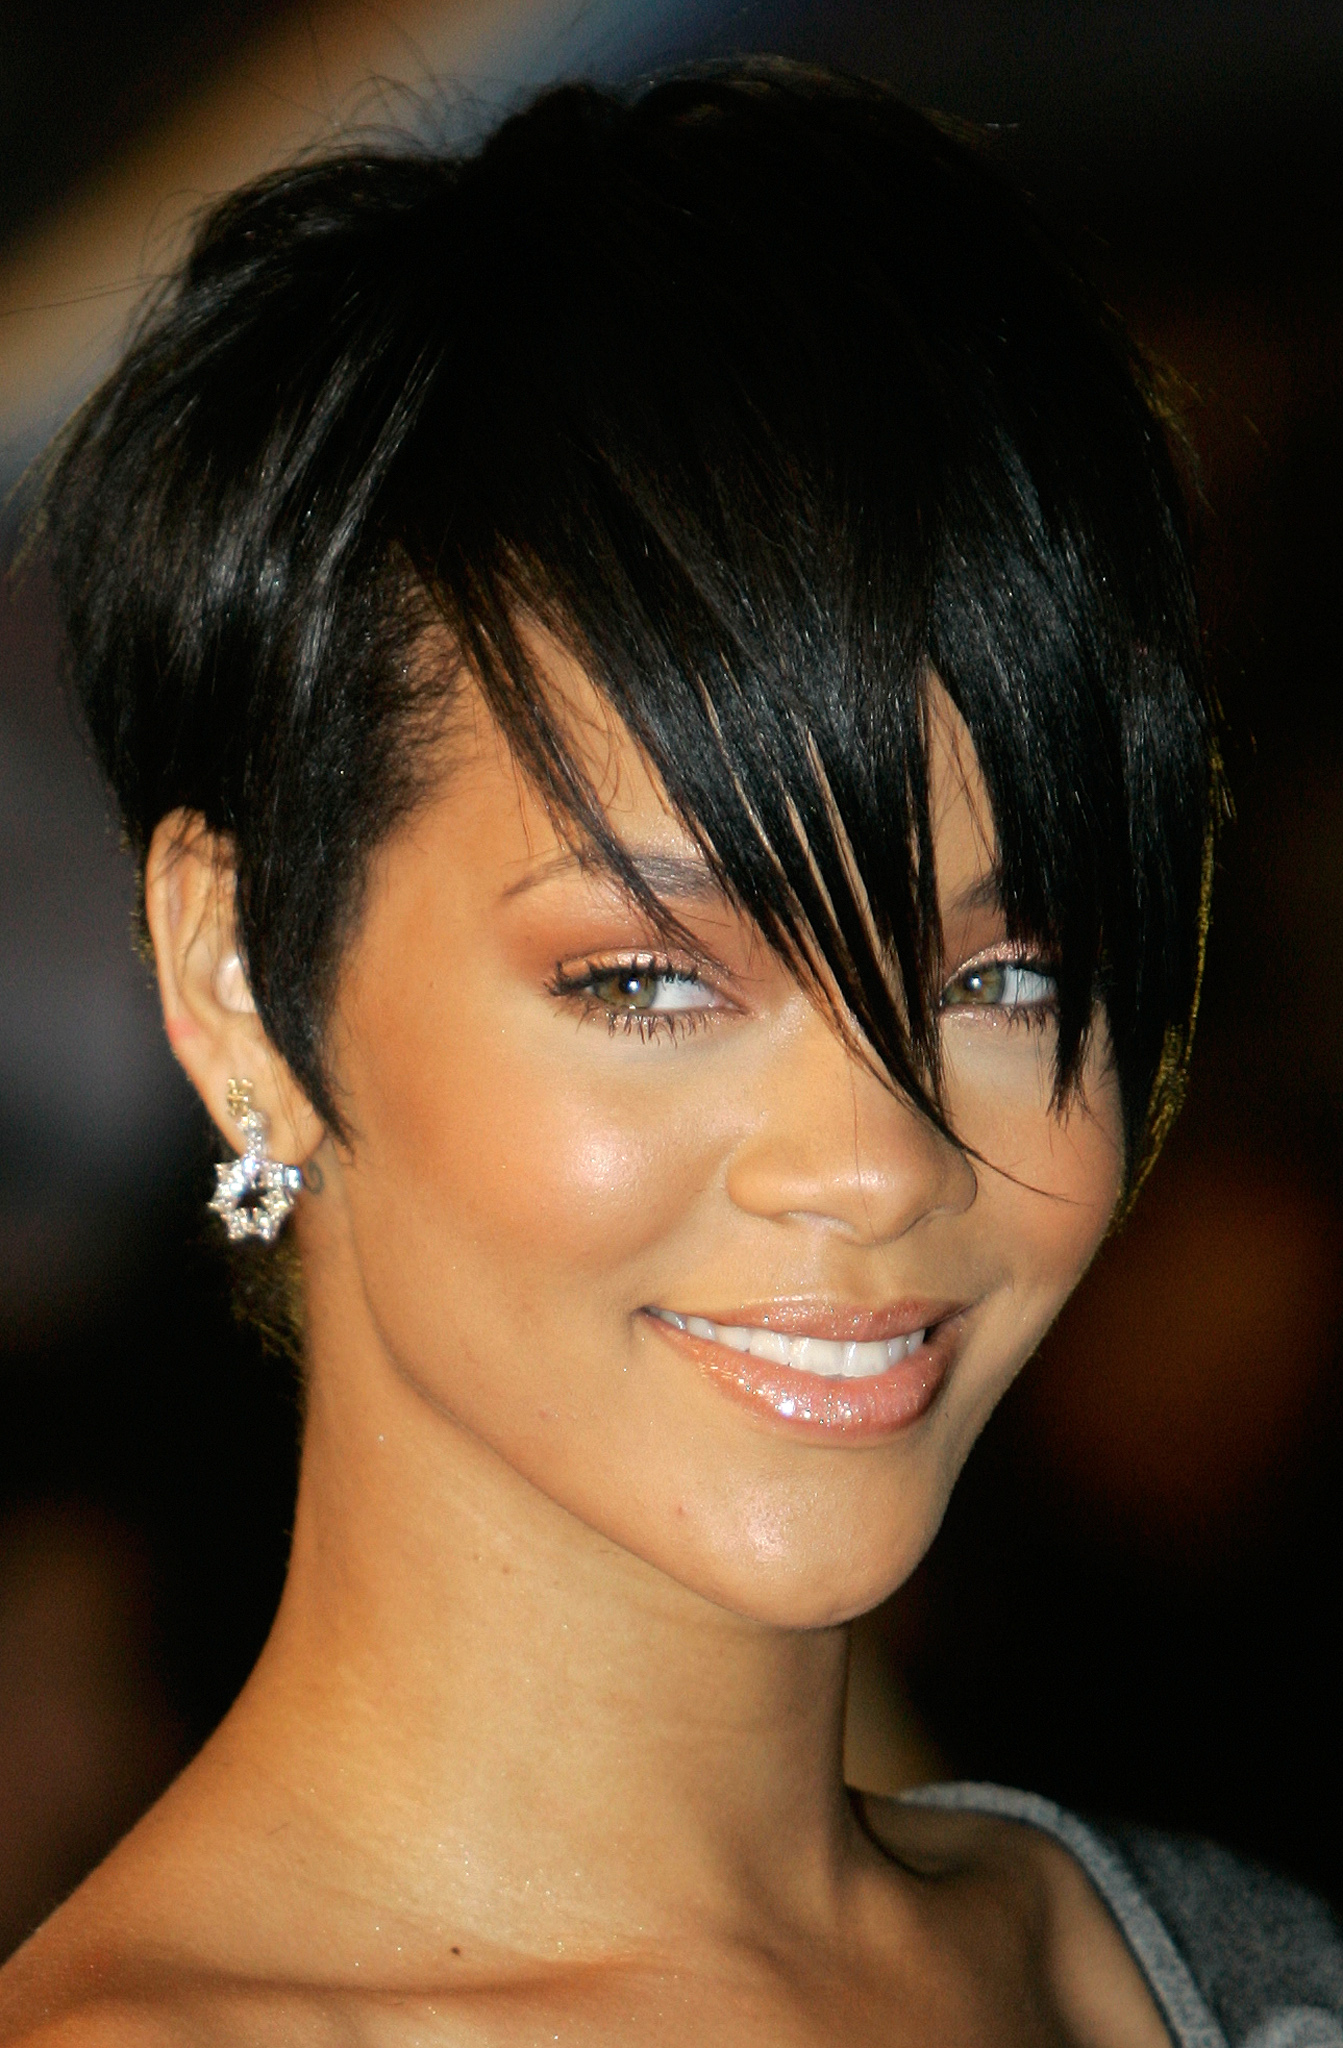 rihanna hair style rihanna photo 864 of 7720 pics wallpaper photo 131757 6140